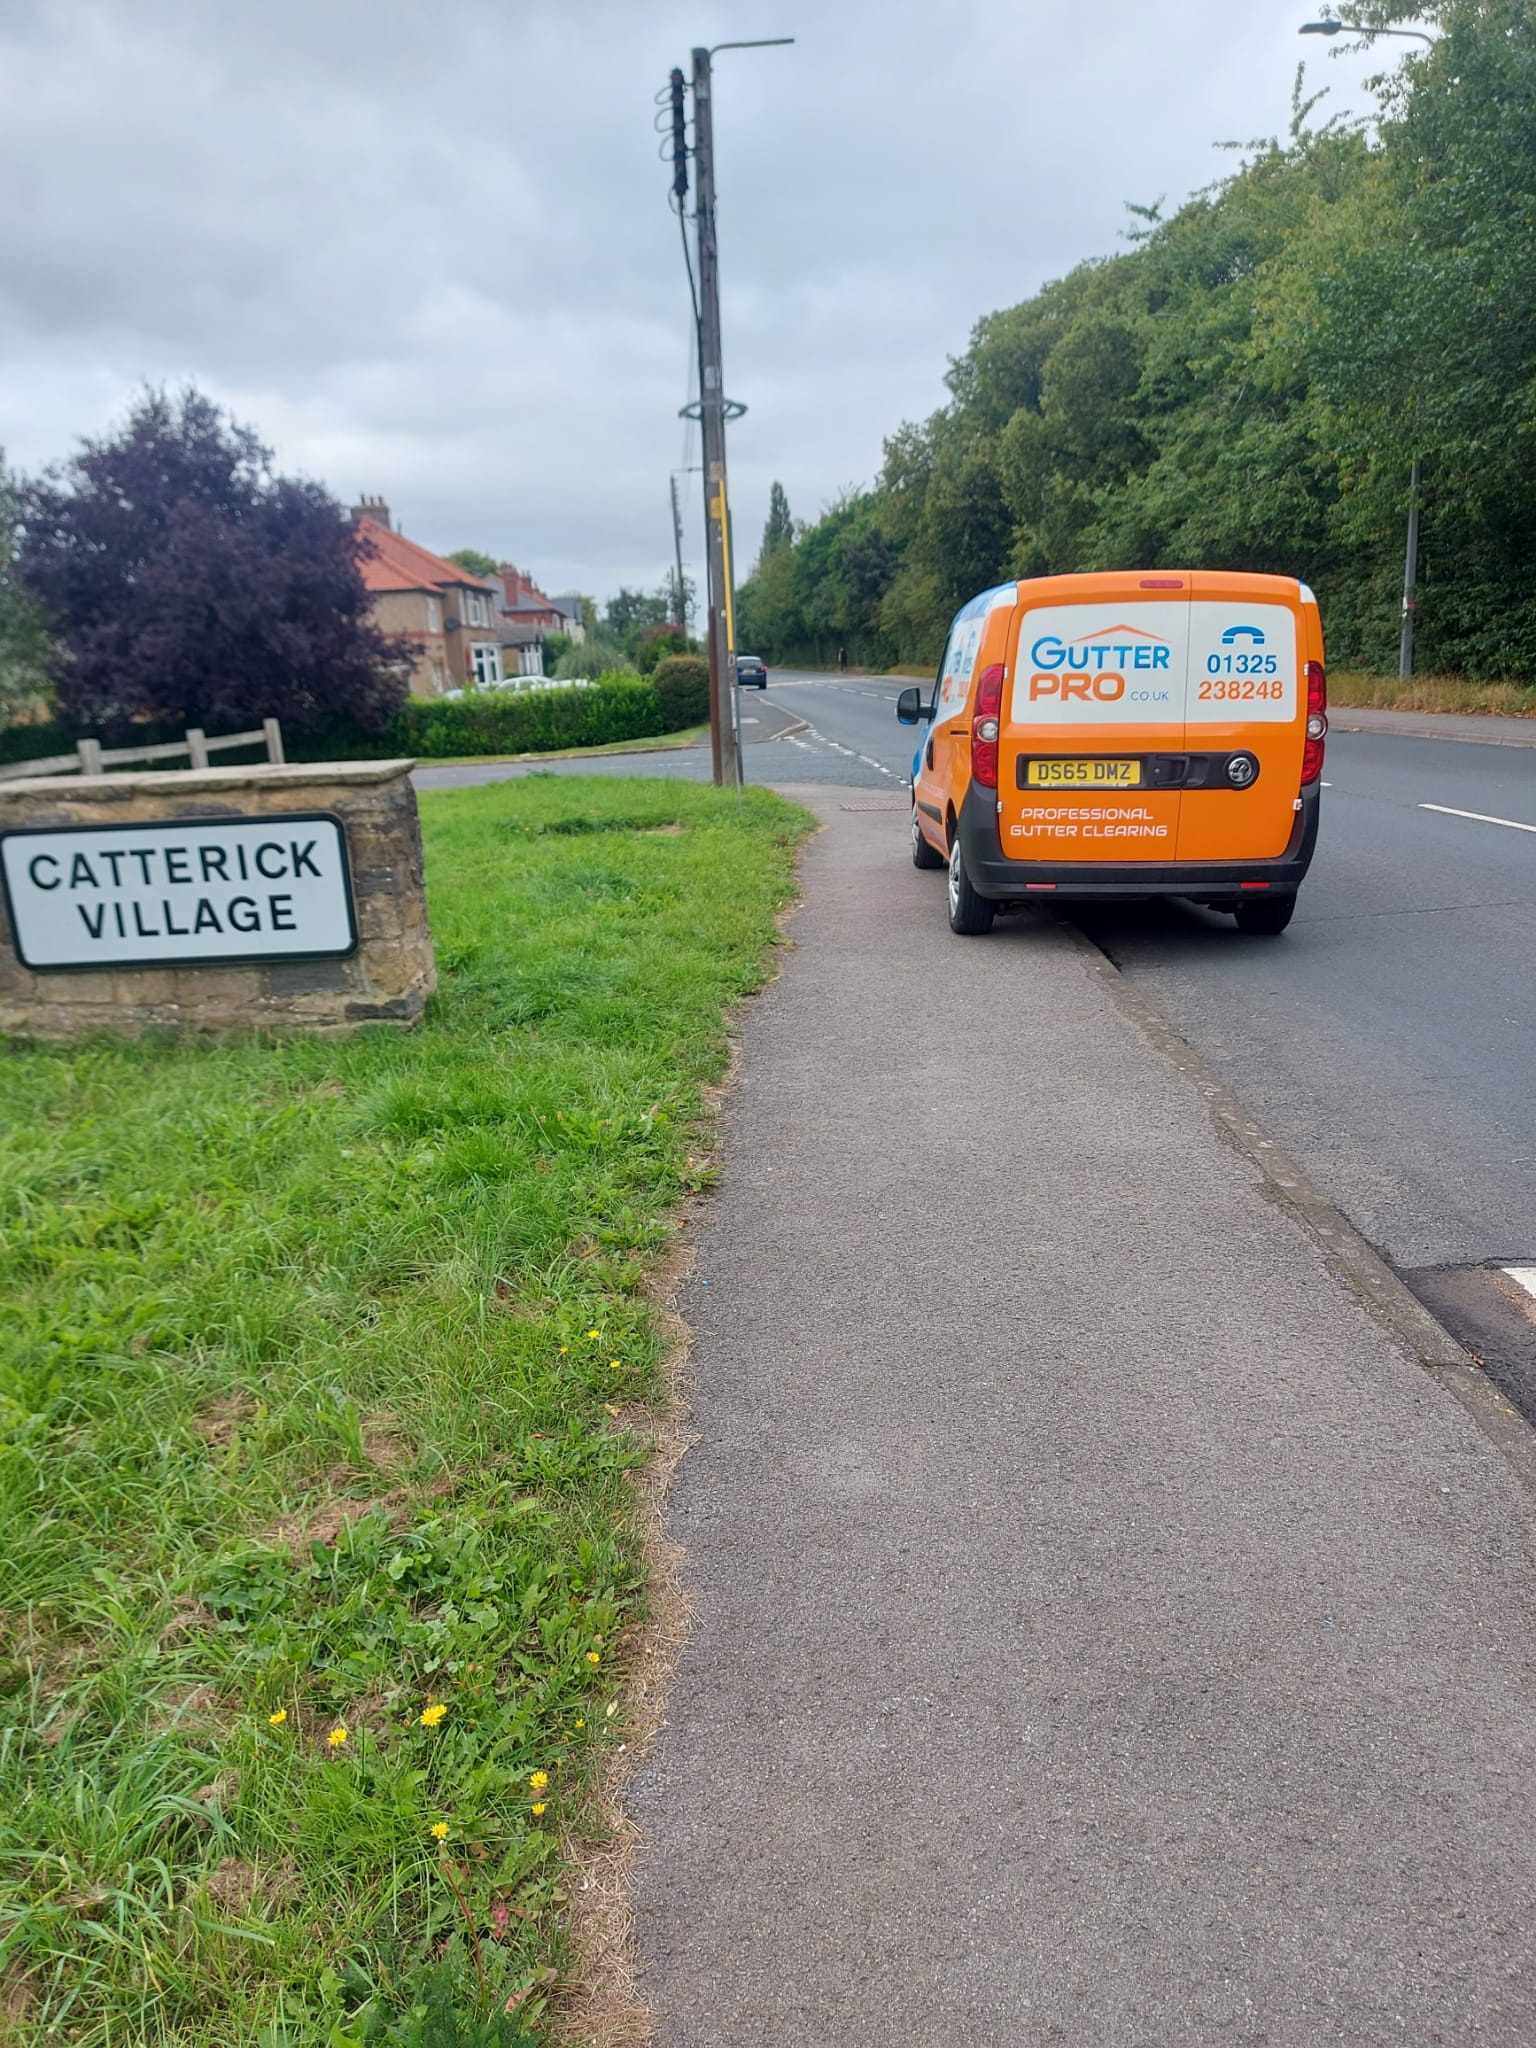 Gutter Cleaning Catterick